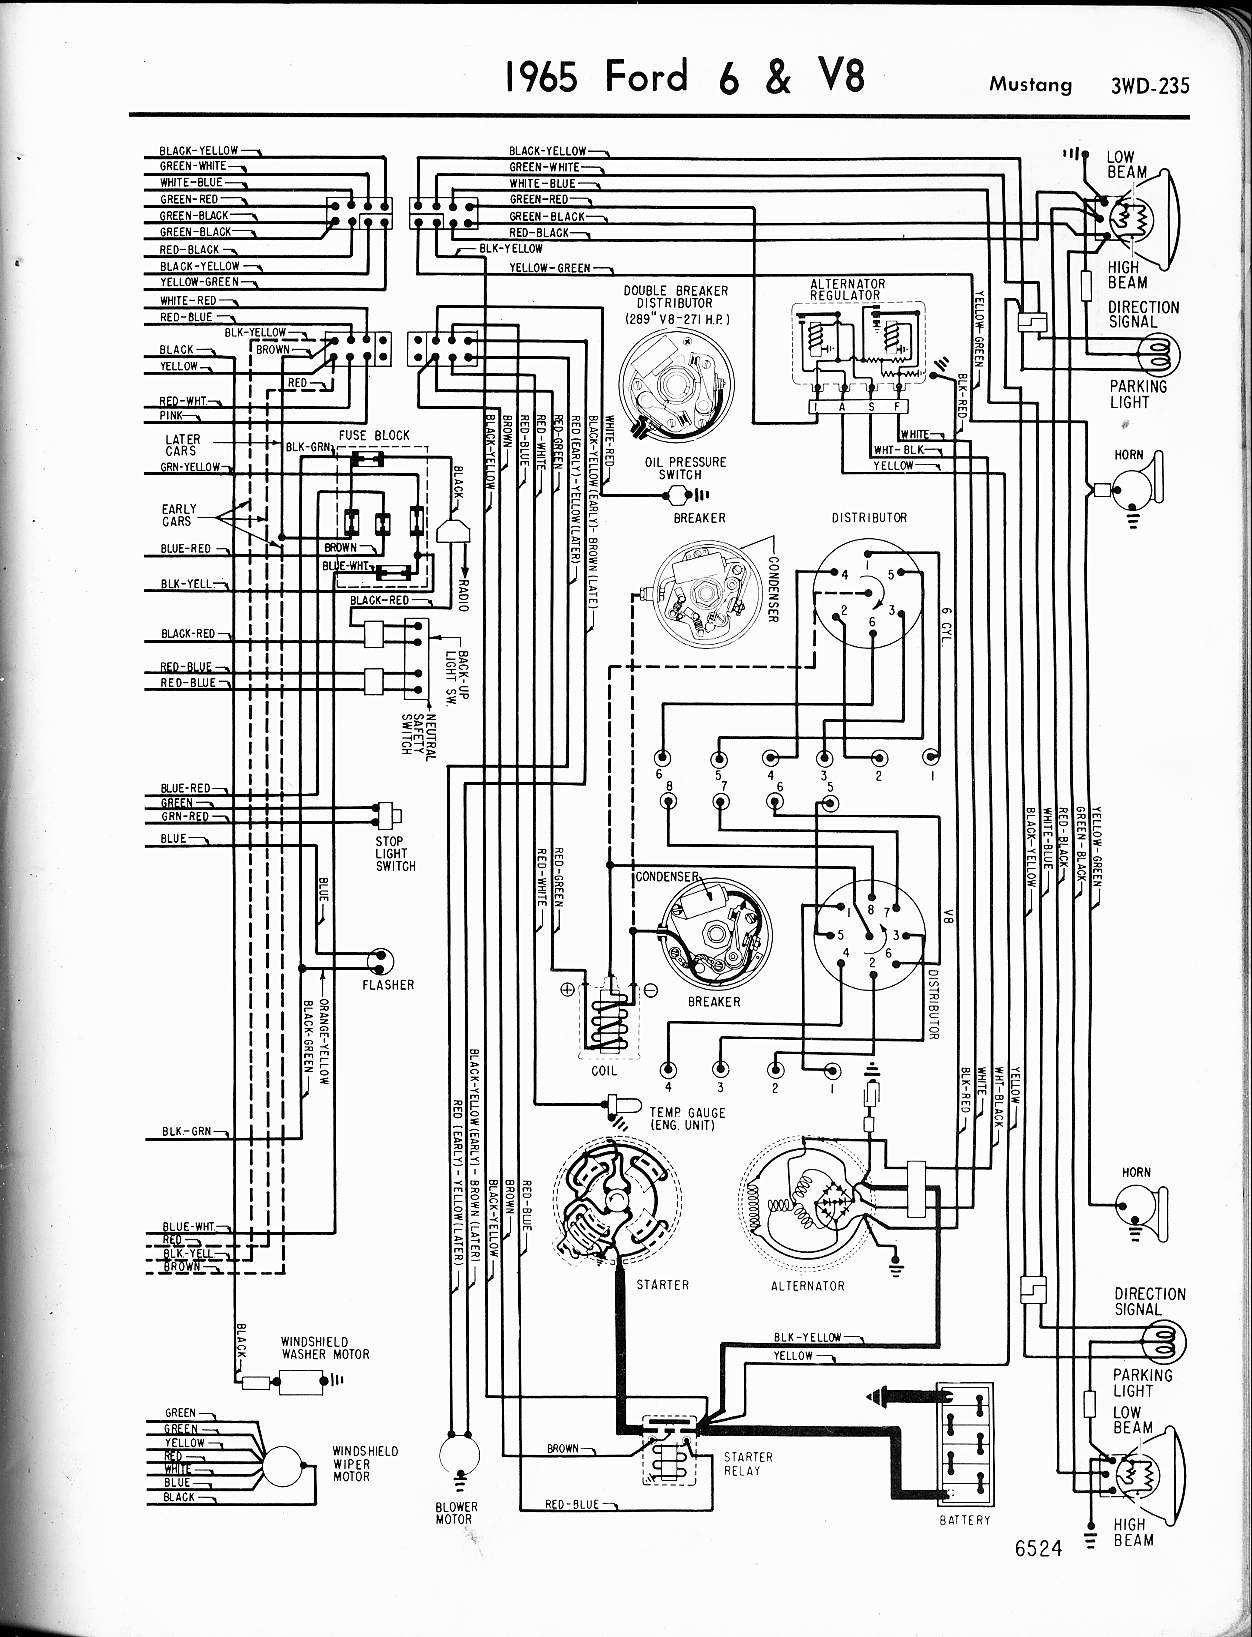 1965_mustang_wiring_2 ford diagrams 1965 thunderbird wiring harness at bakdesigns.co